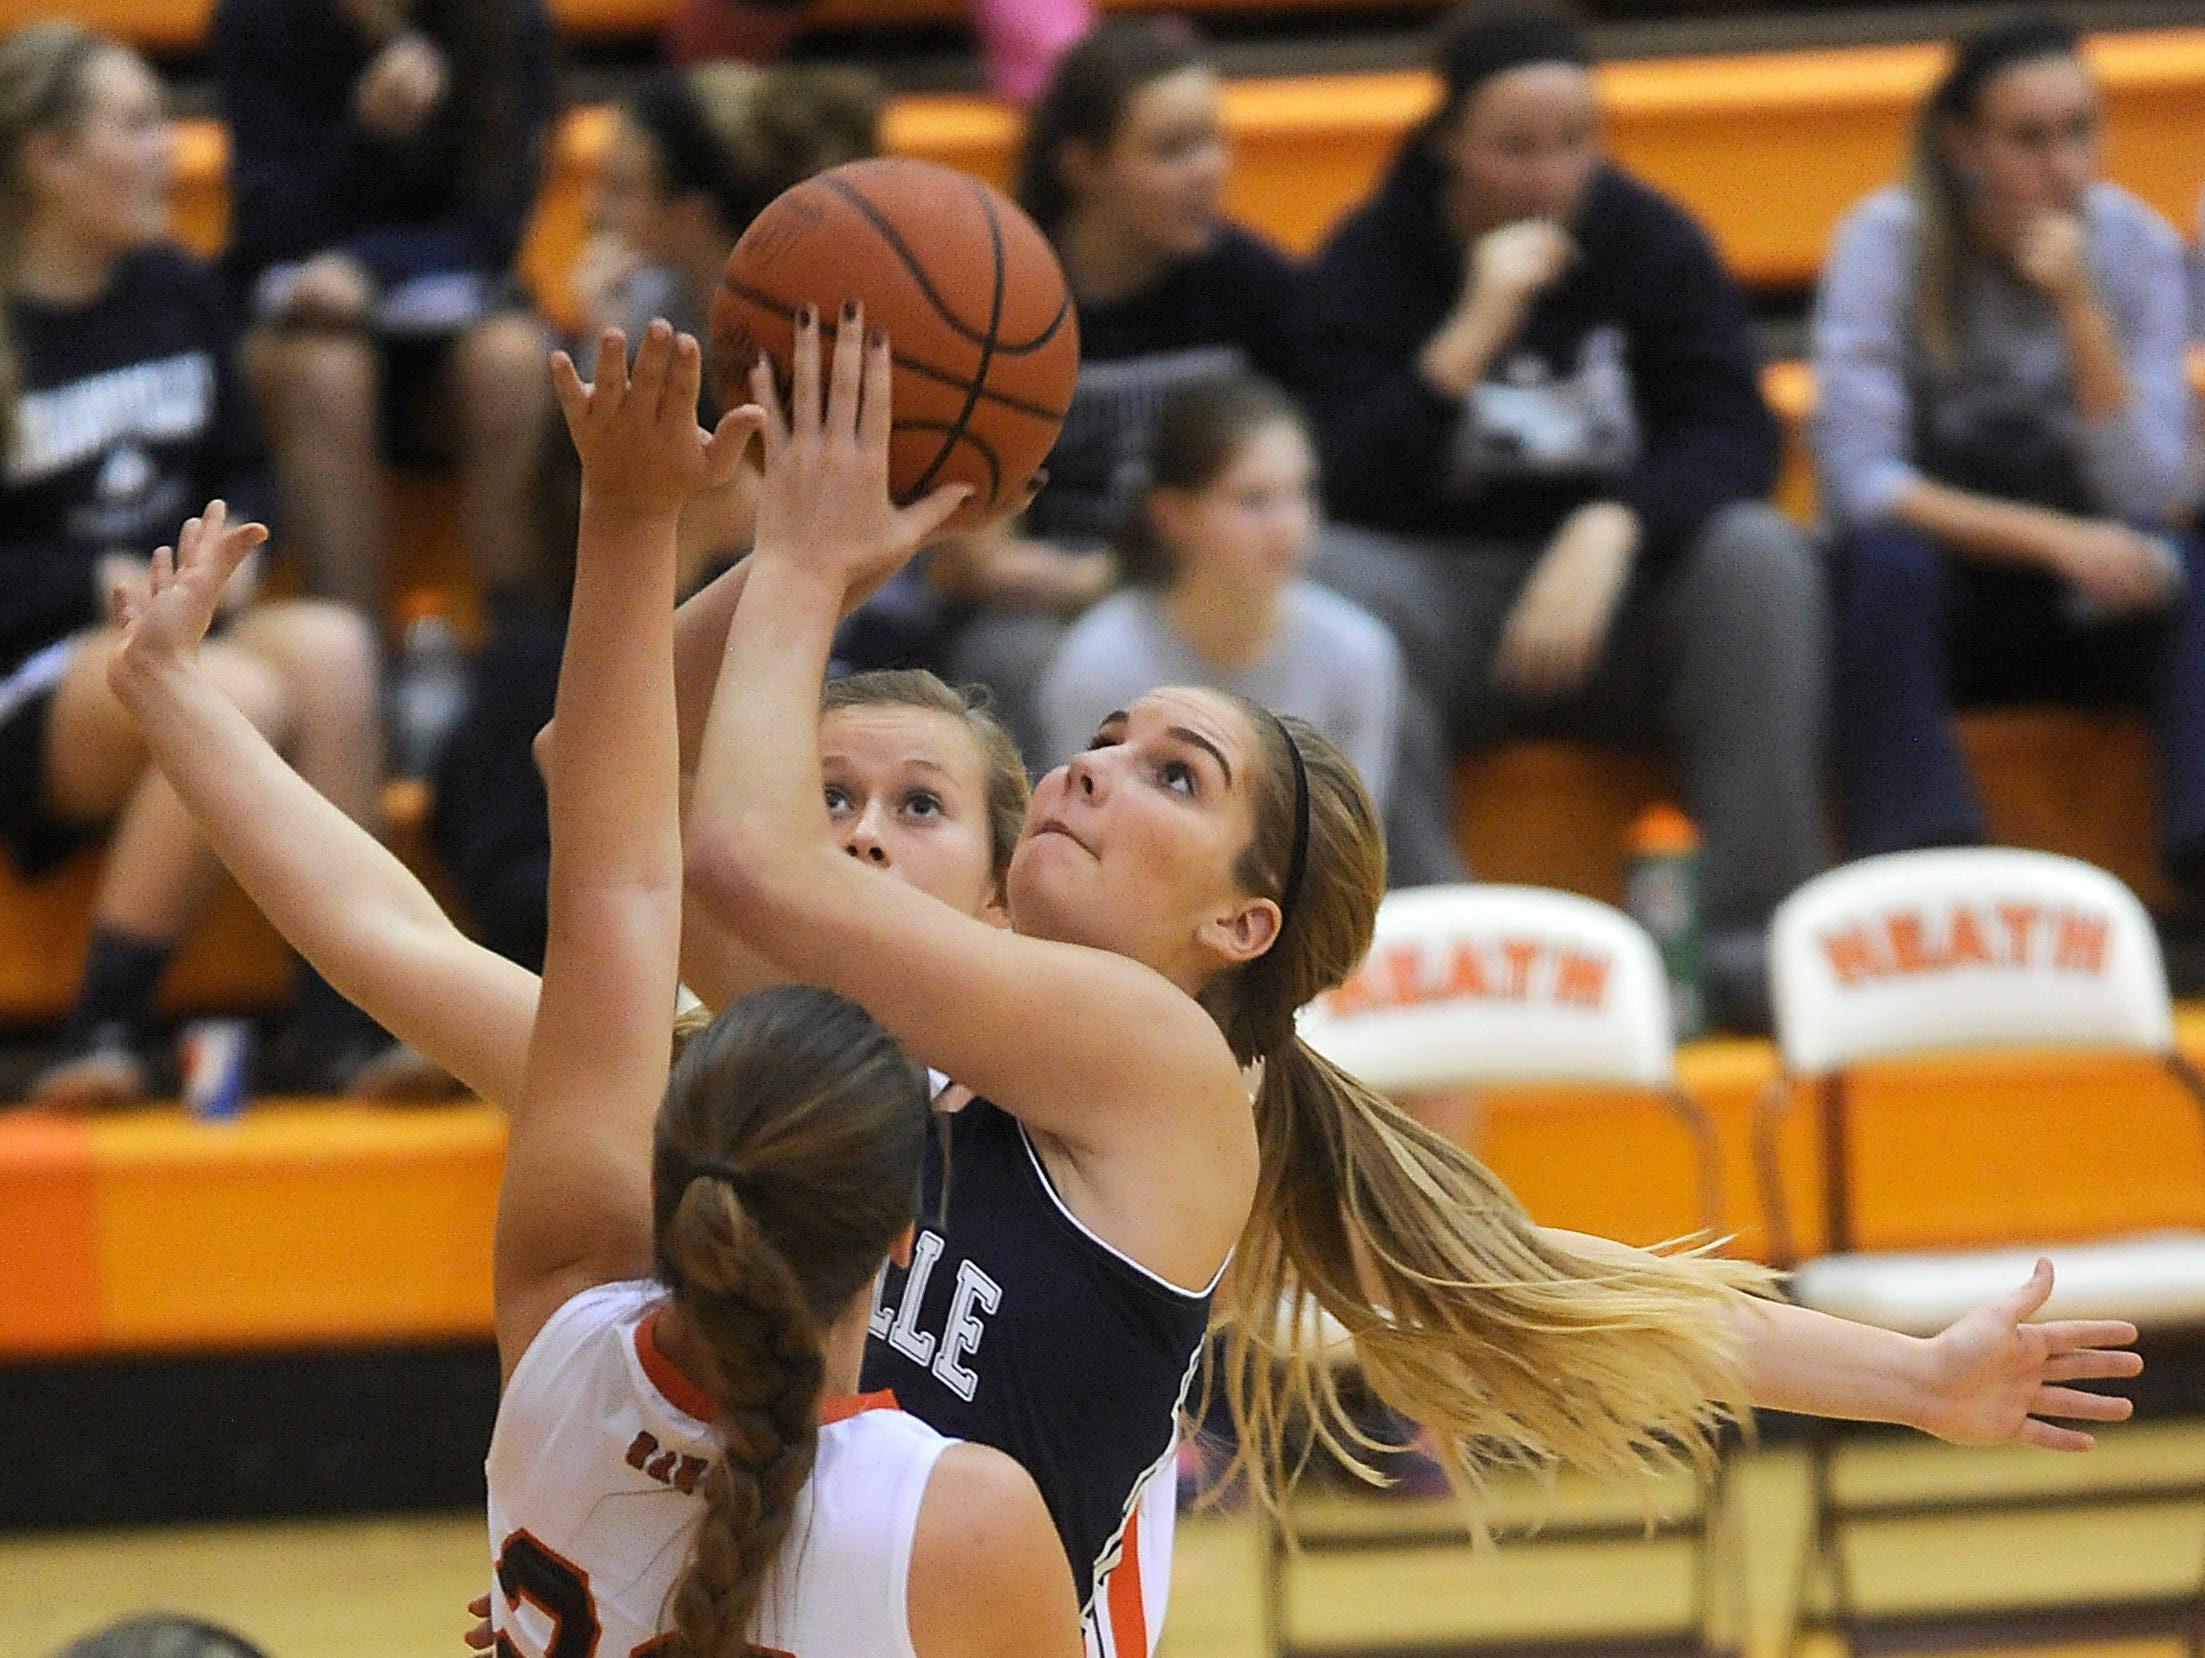 Granville's Courtney Brooks takes a shot against defense from Heath's Madi Shoemaker on Tuesday. The Blue Aces defeated the Bulldogs 54-43.